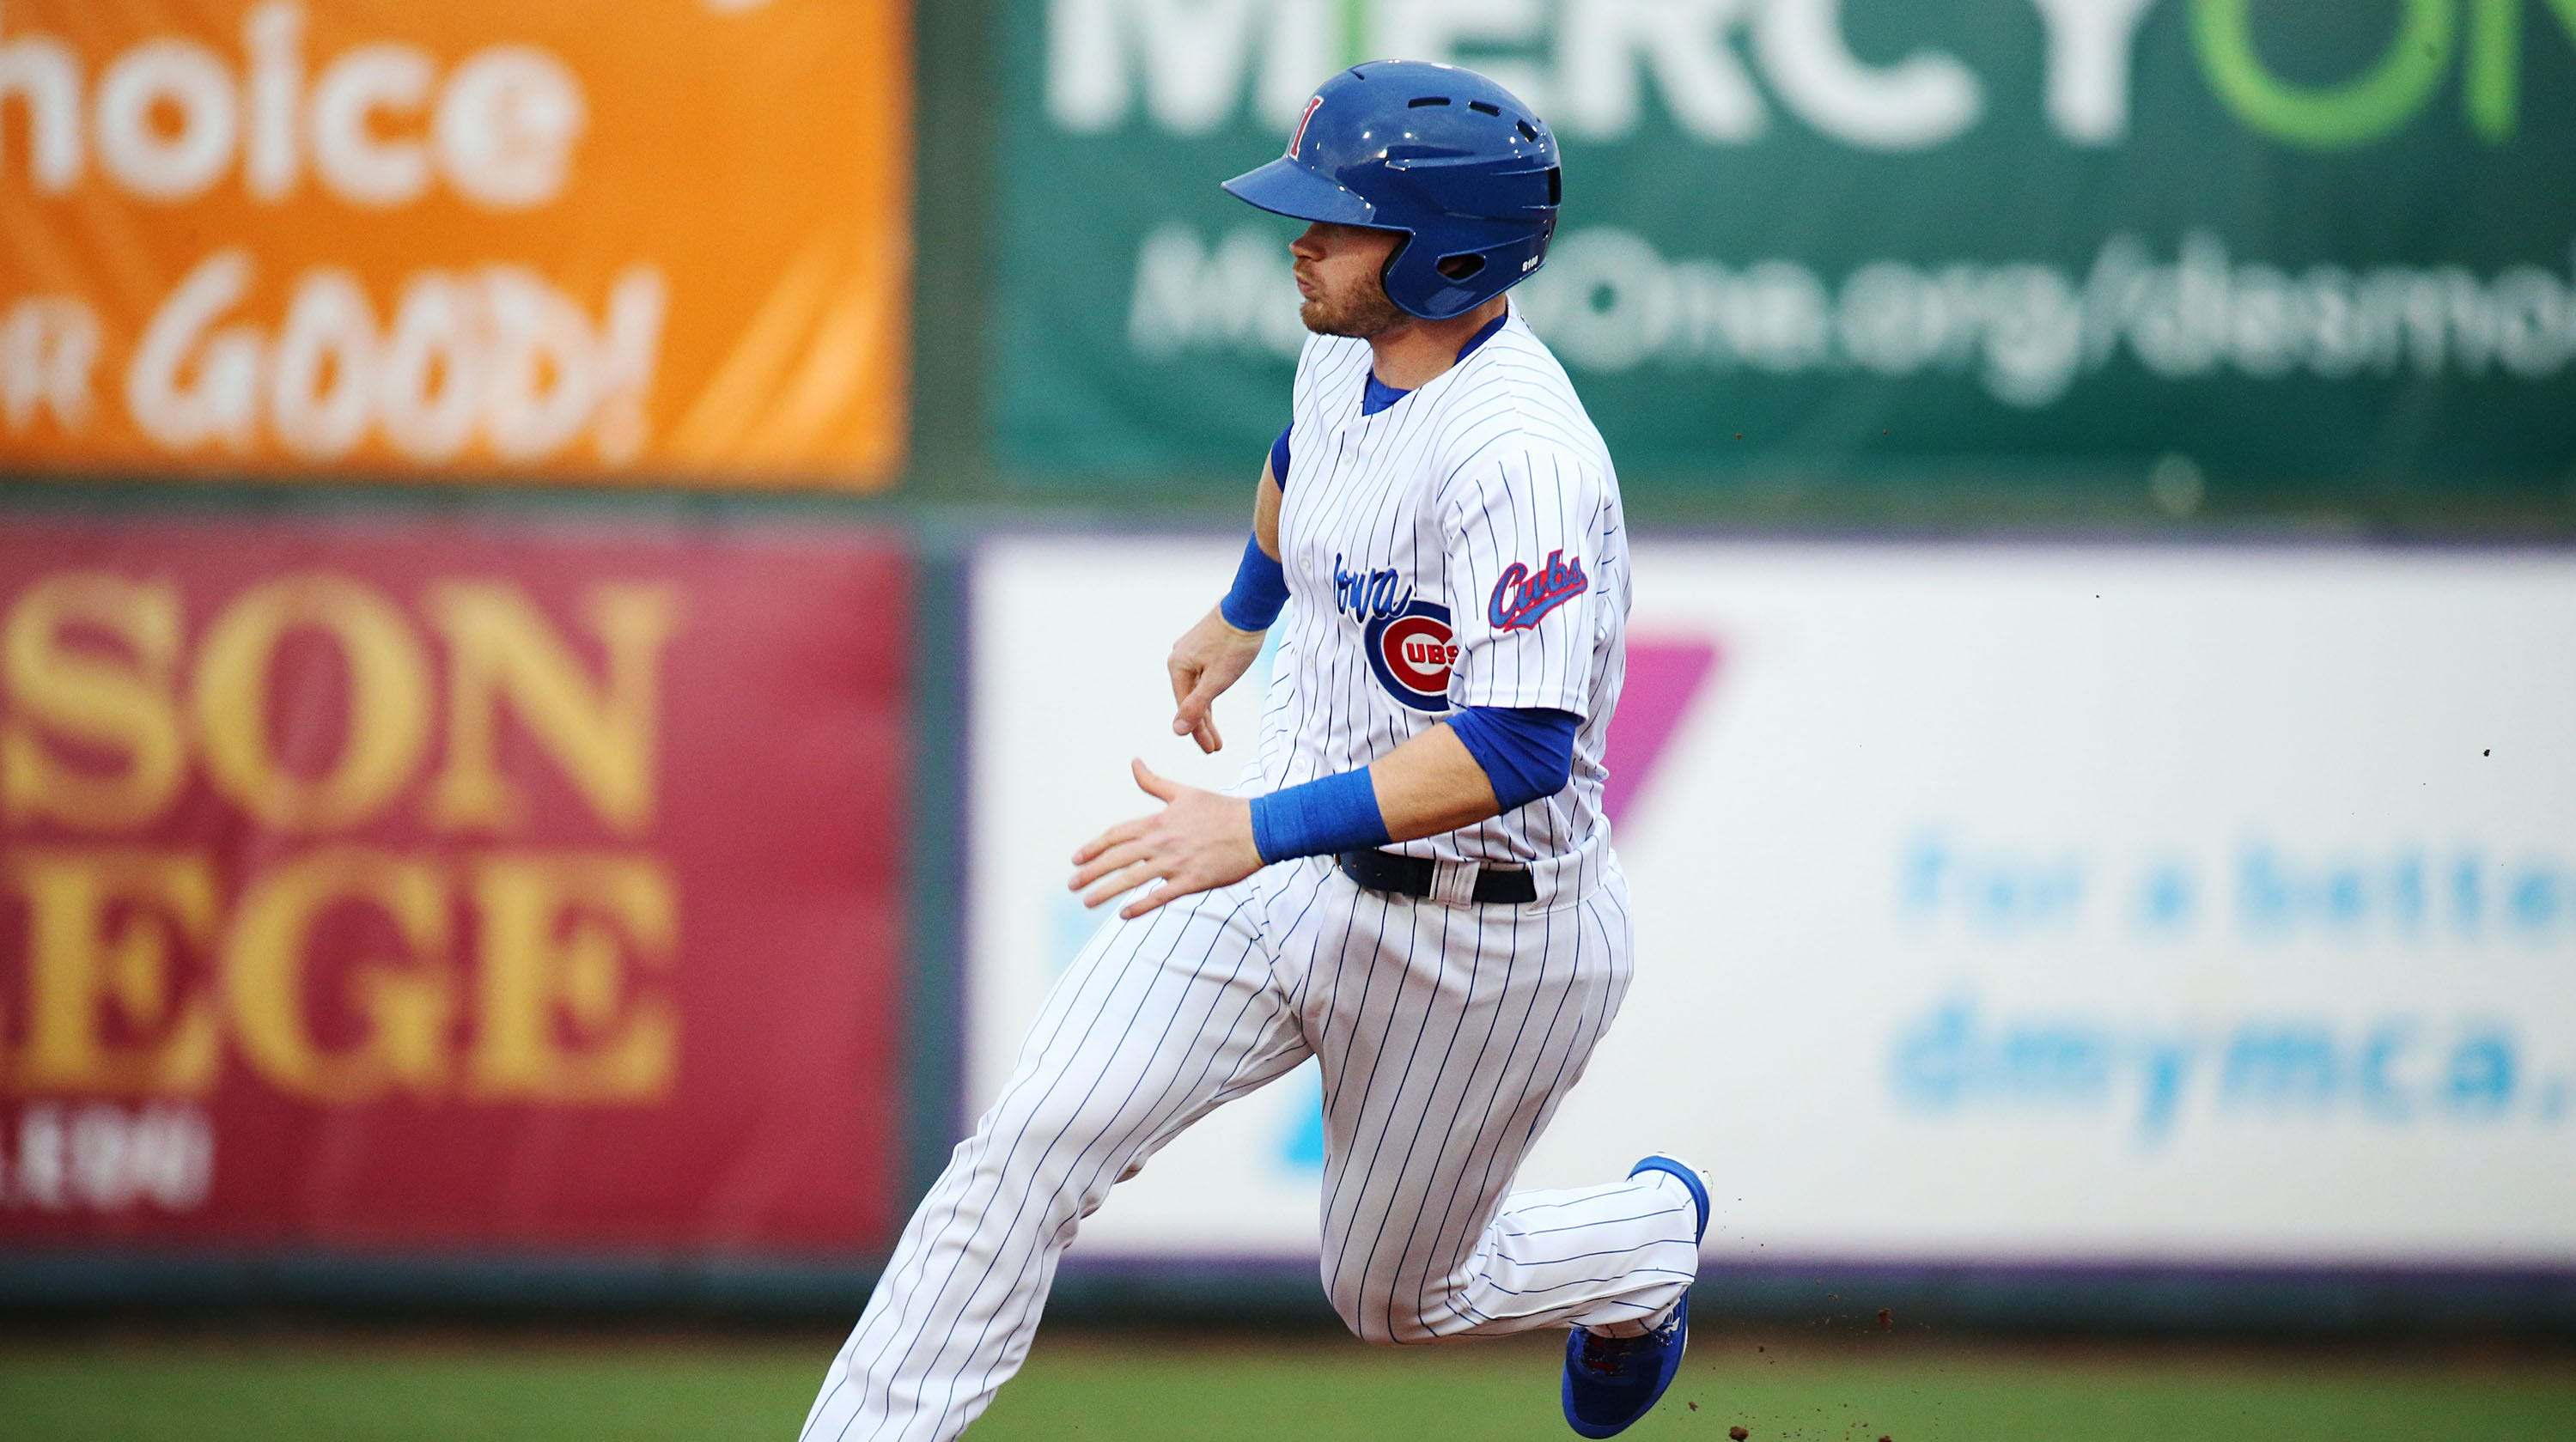 Photos: The Iowa Cubs play their first home game of the 2019 season